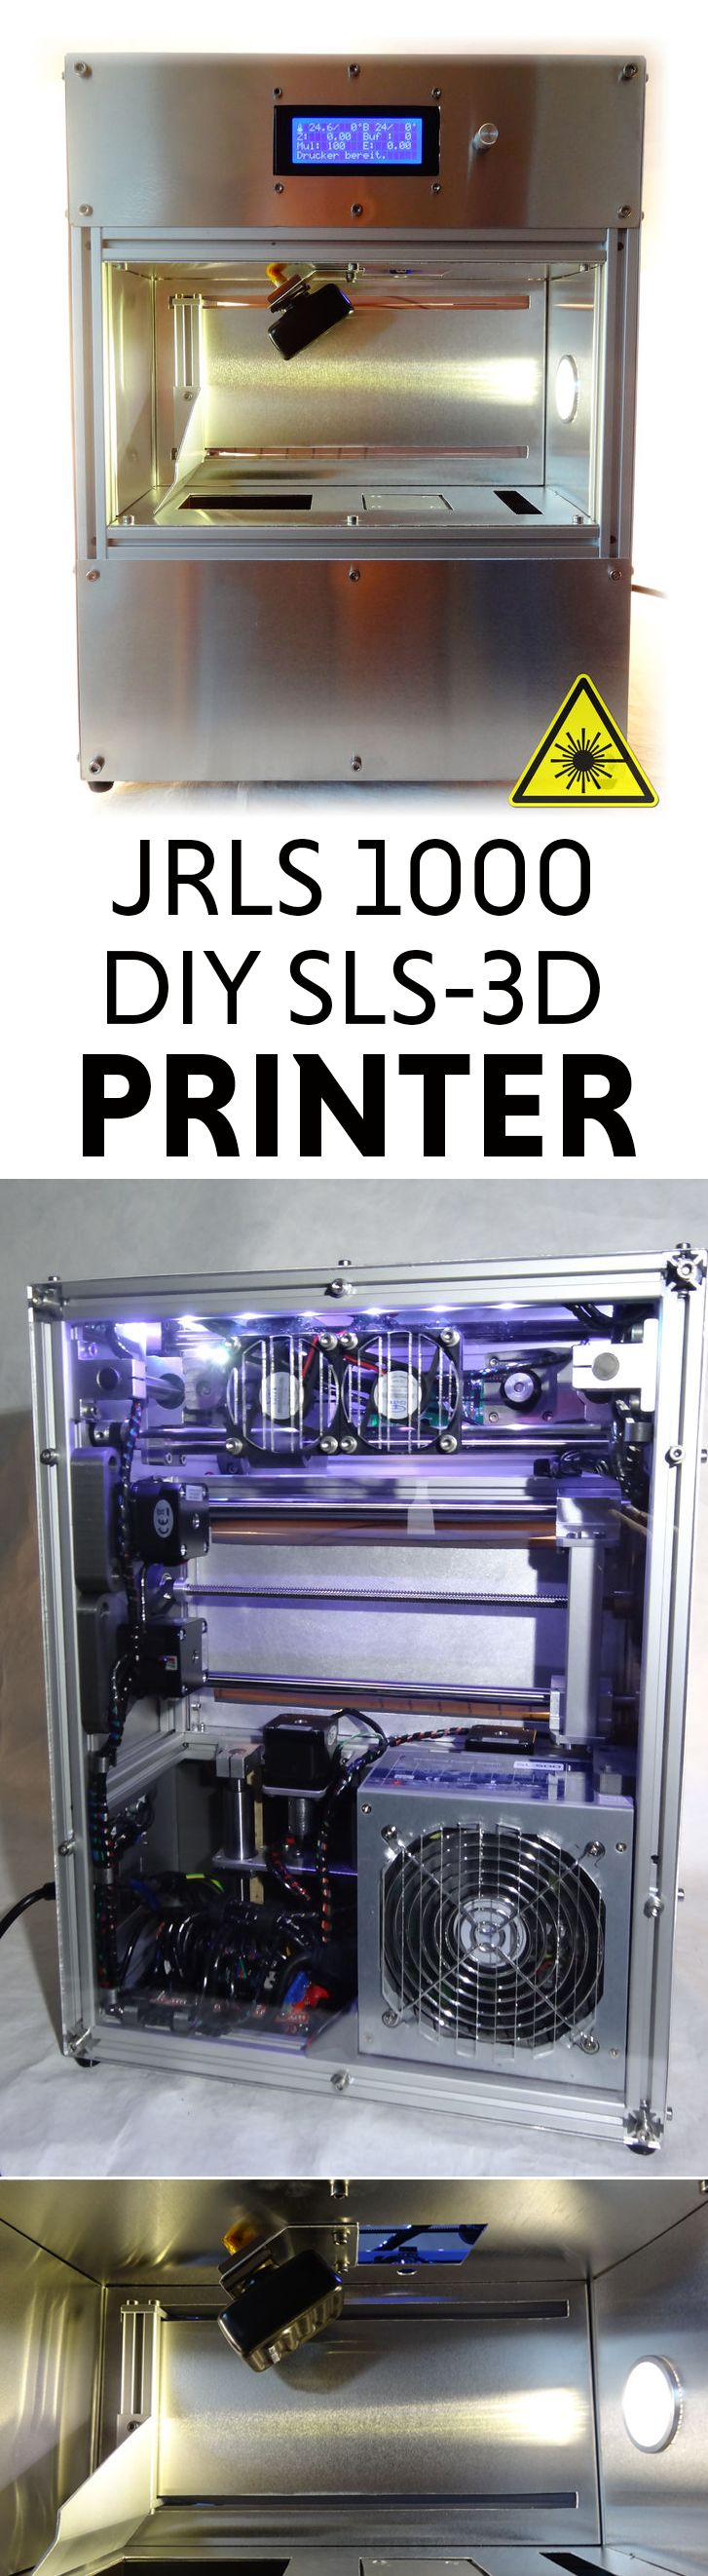 Color printing purdue - Build Your Own 3d Printer Lot S Of Work But It Can Be Done